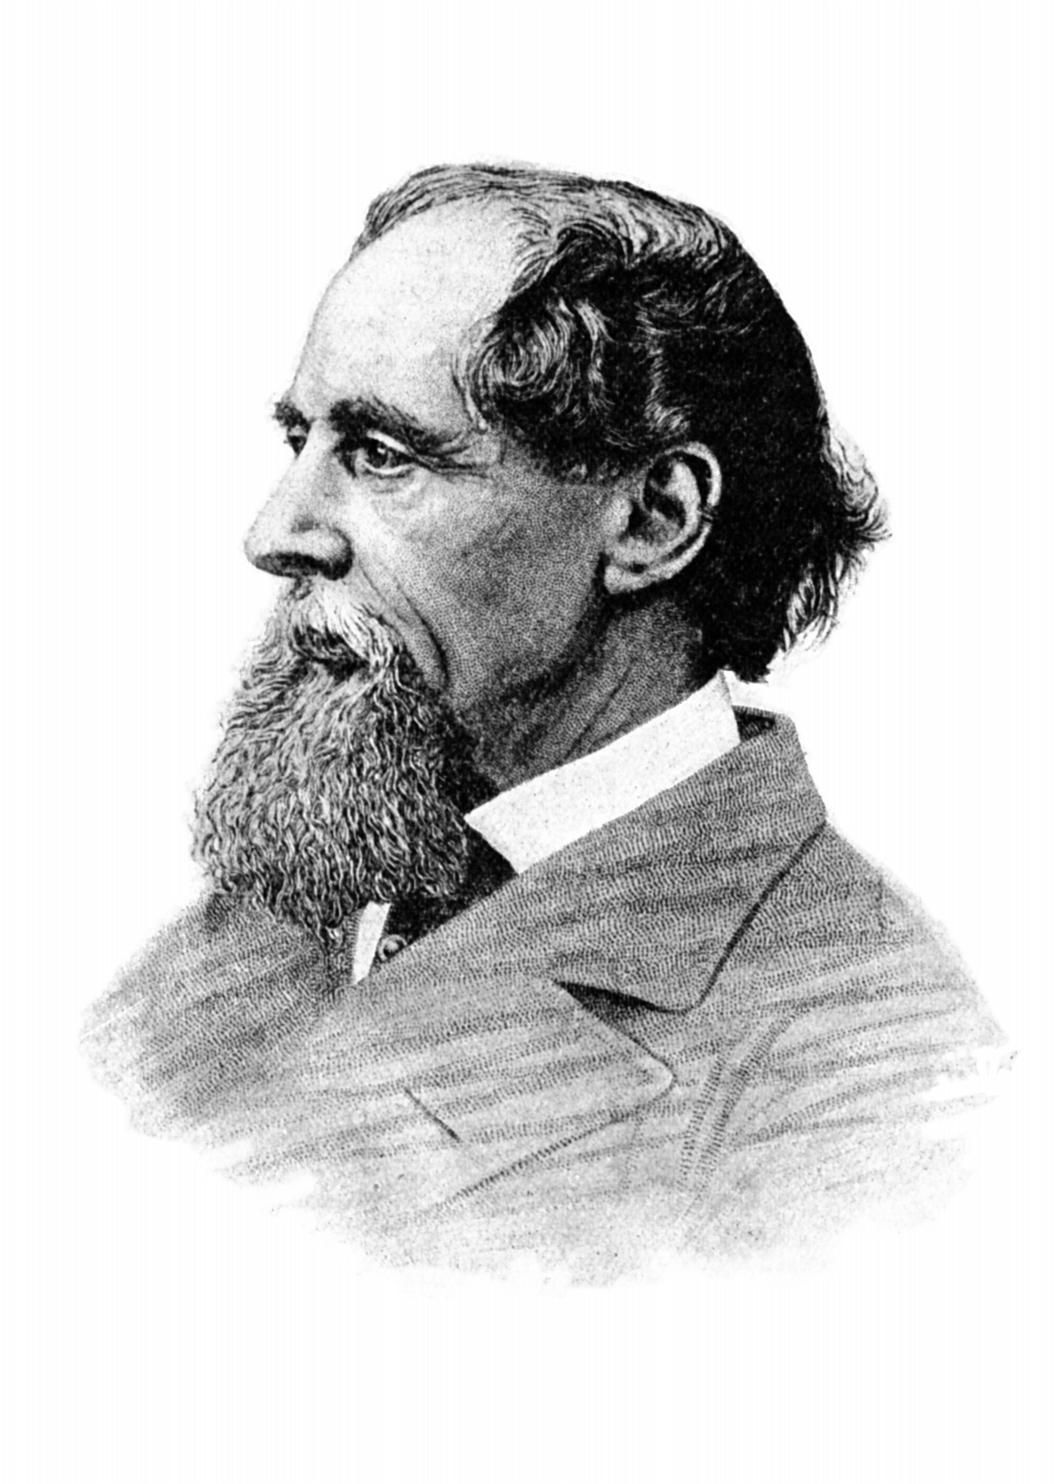 a biography of the writer charles dickens 1812 1870 Charles dickens was born in portsmouth, england, on february 7, 1812, to john and elizabeth dickens he was the second of eight children his mother had been in service to lord crew, and his father worked as a clerk for the naval pay office john dickens was imprisoned for debt when charles was young charles.